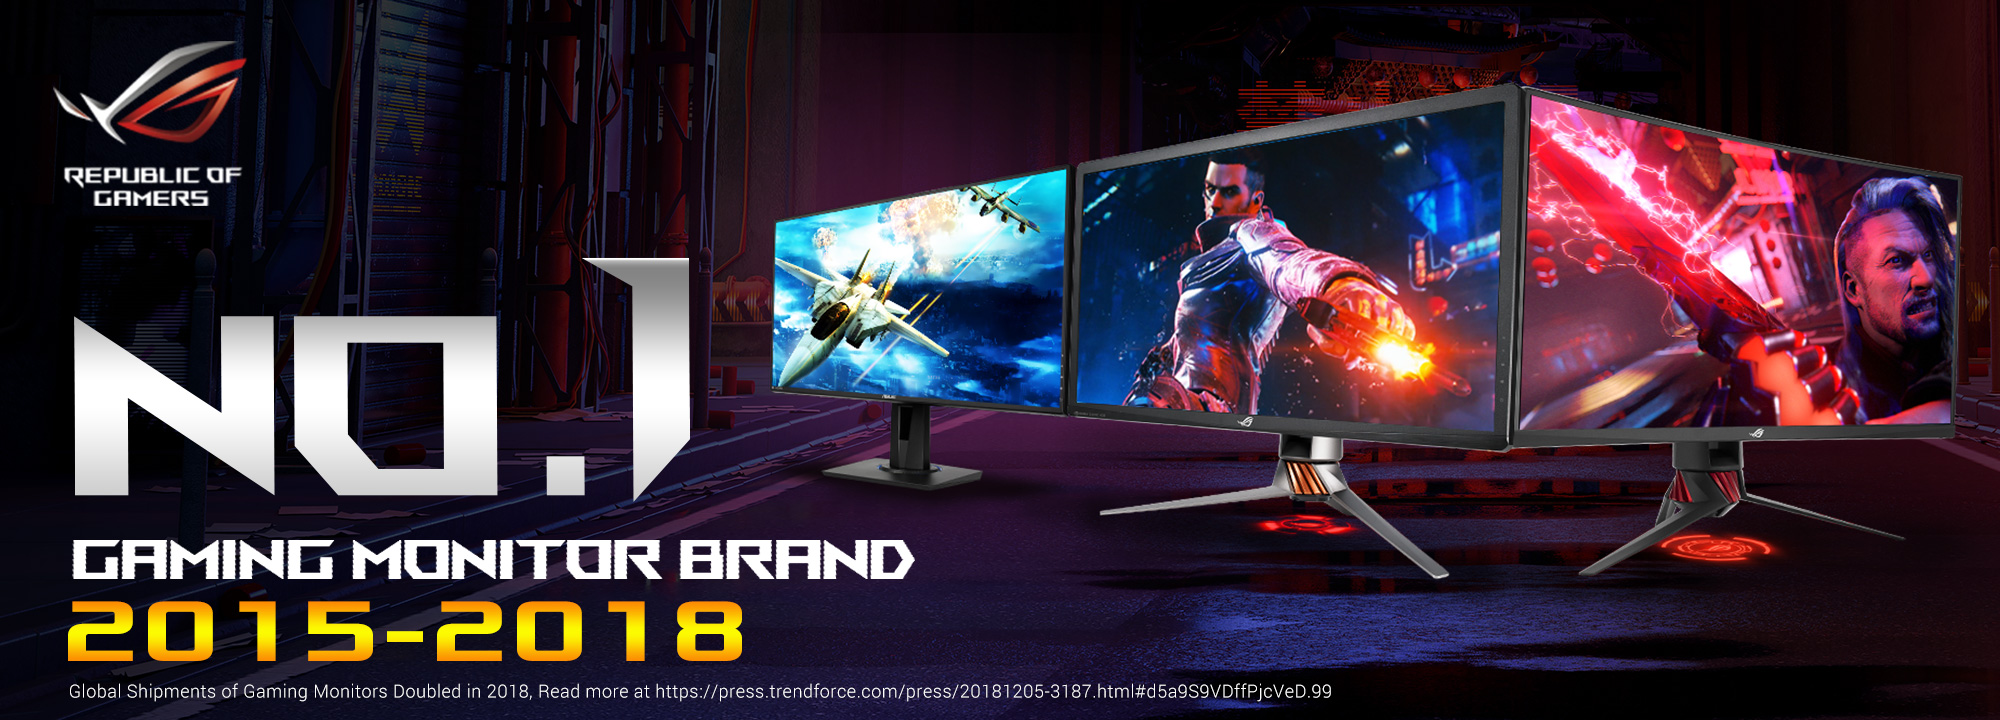 ASUS Republic of Gamers Revelado como Líder Mundial en Monitores Gamers 2018